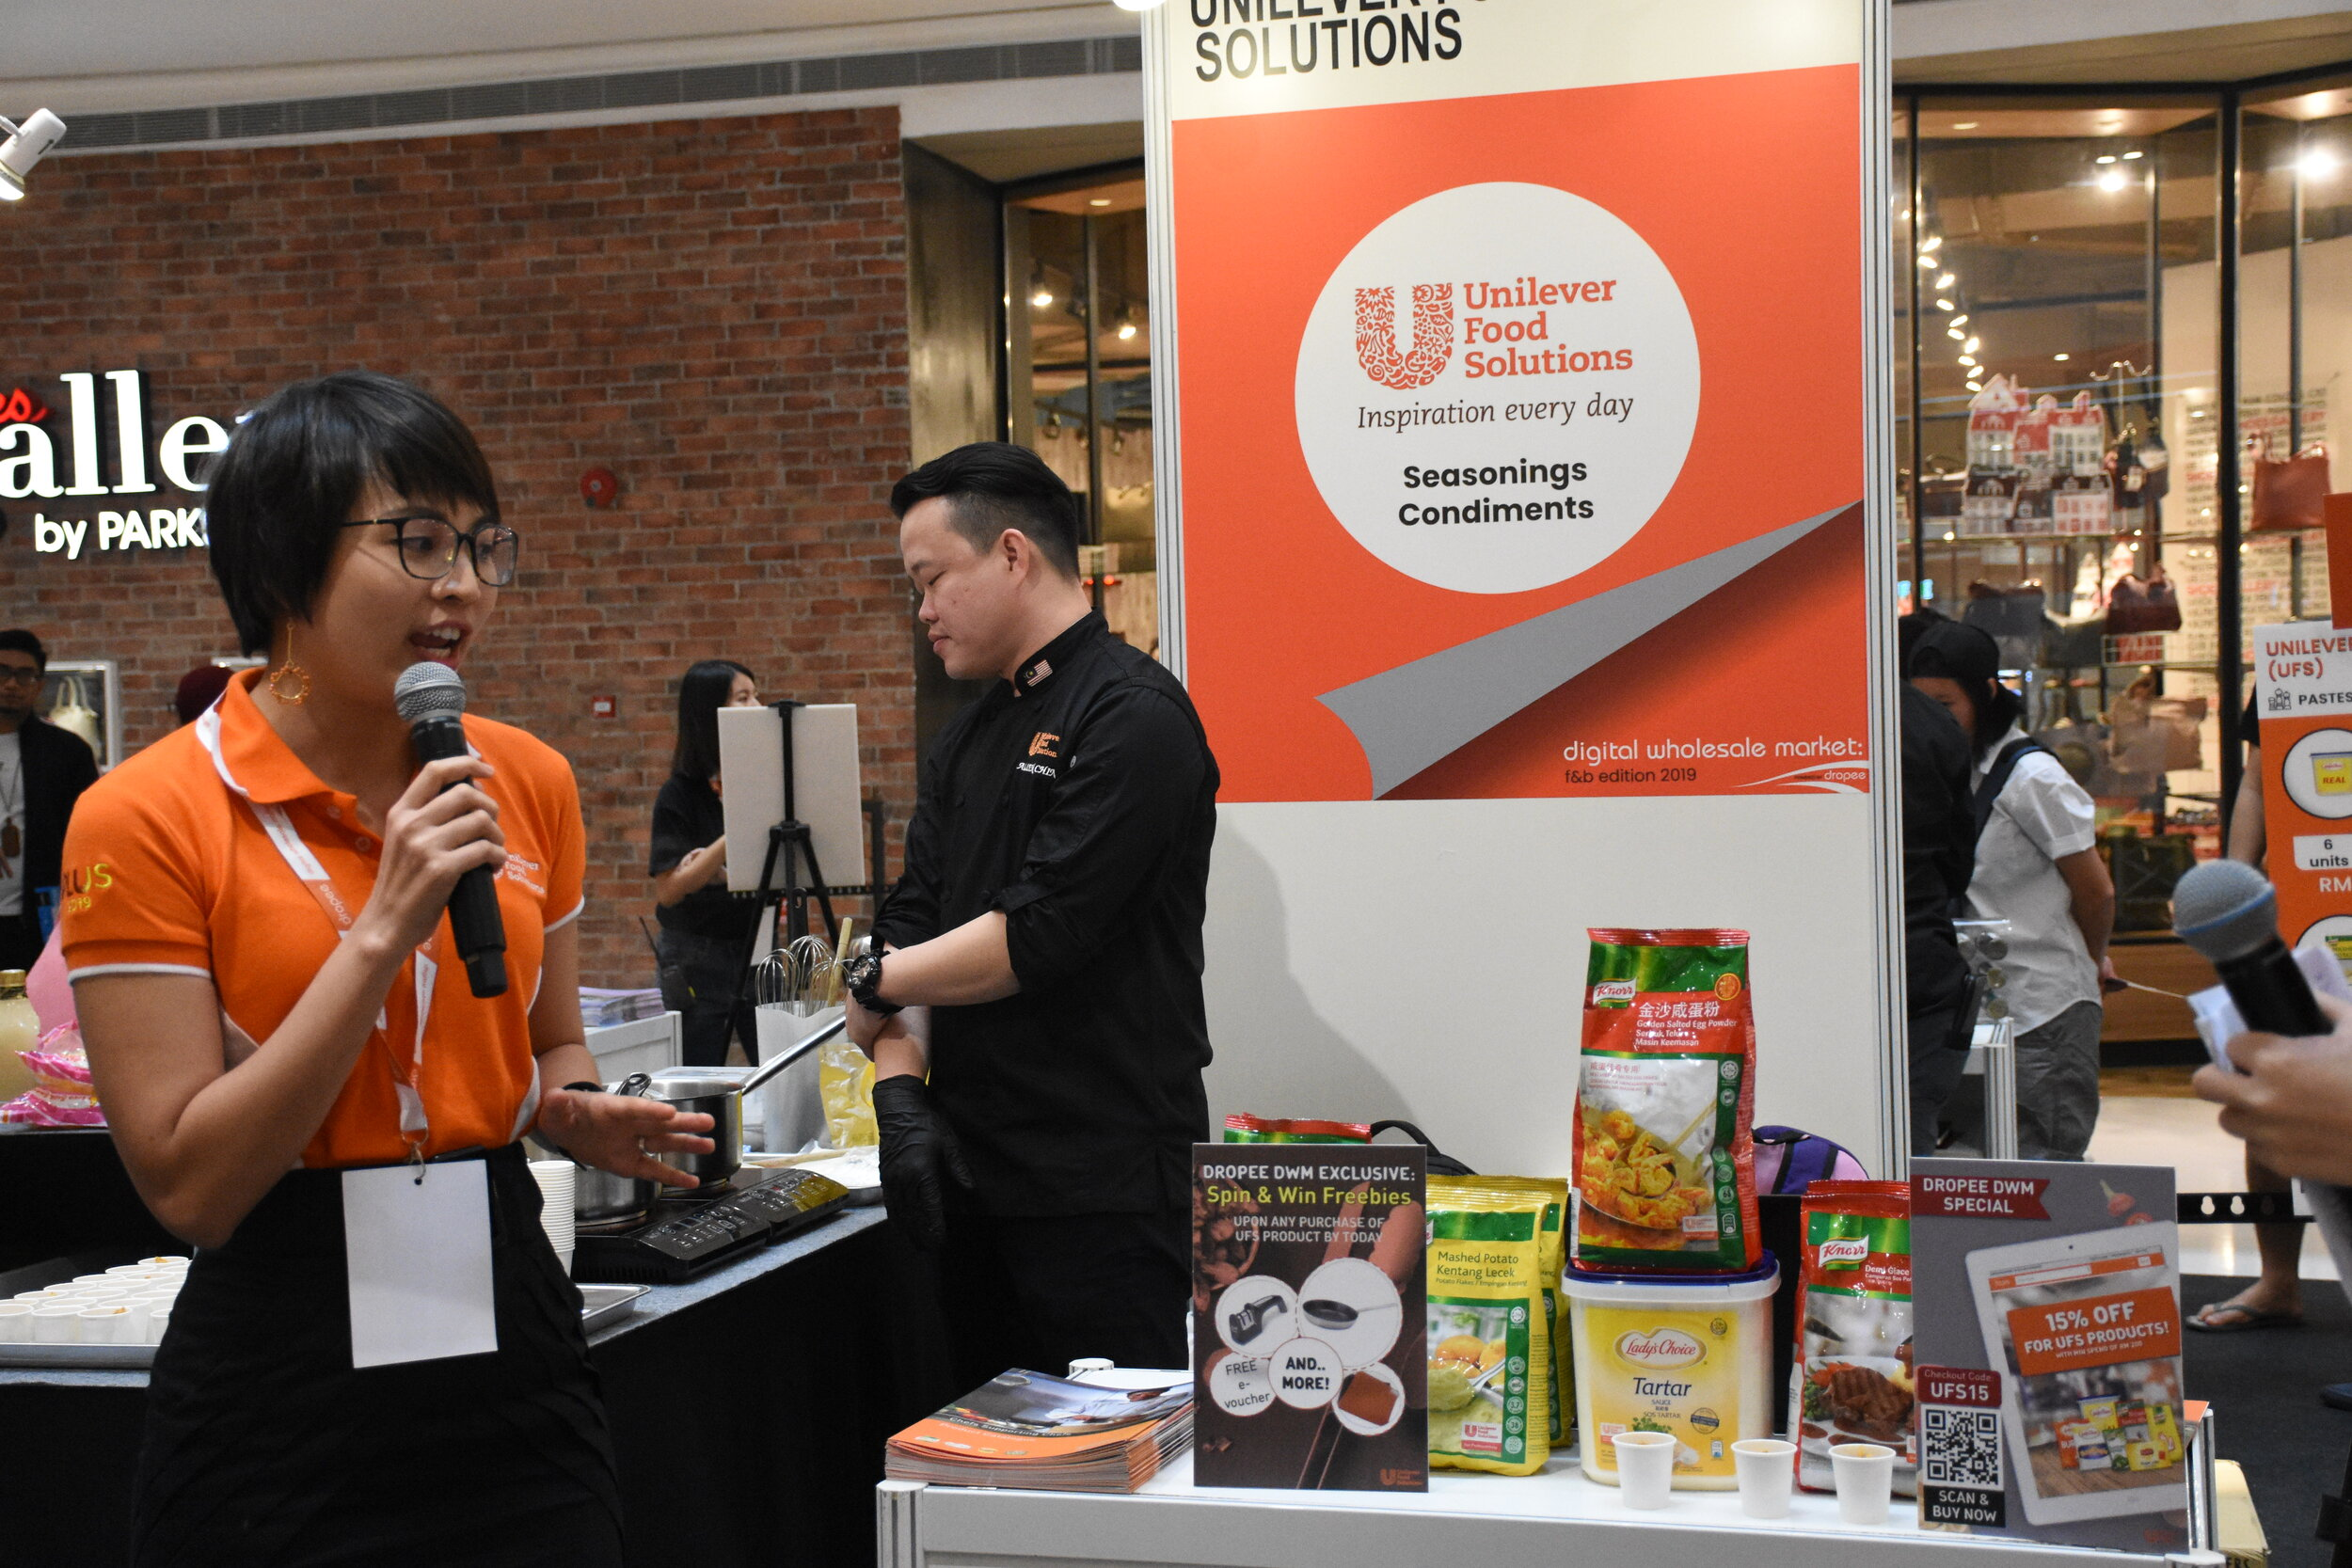 Unilever Food Solutions, one of the participating suppliers at Digital Wholesale Market: F&B Edition 2019.